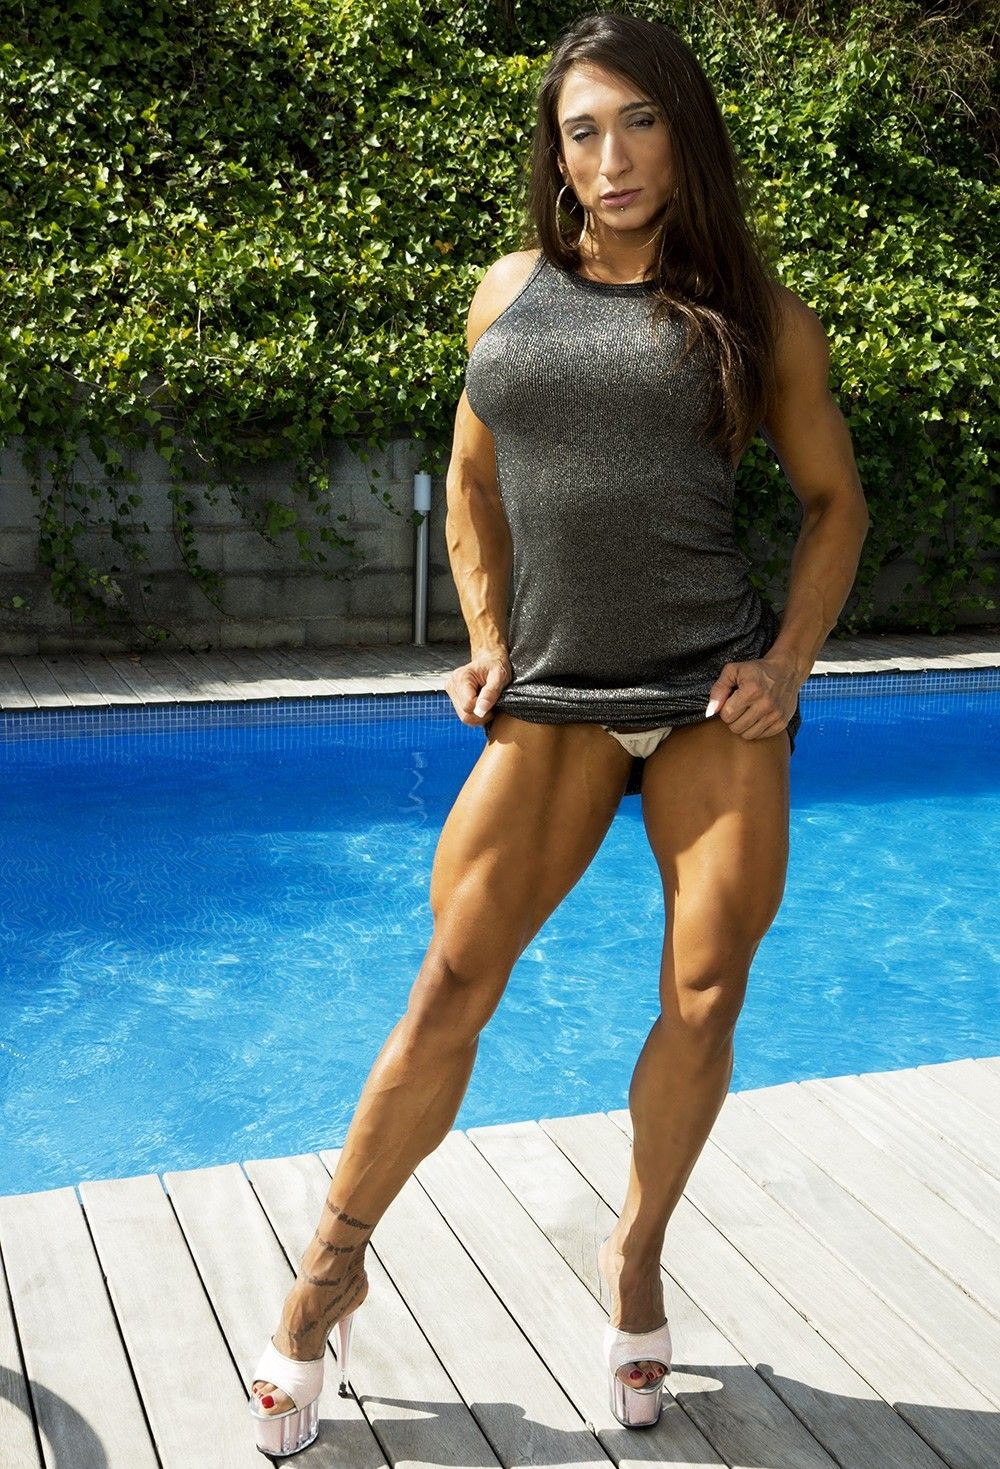 latina woman muscle - photo#43